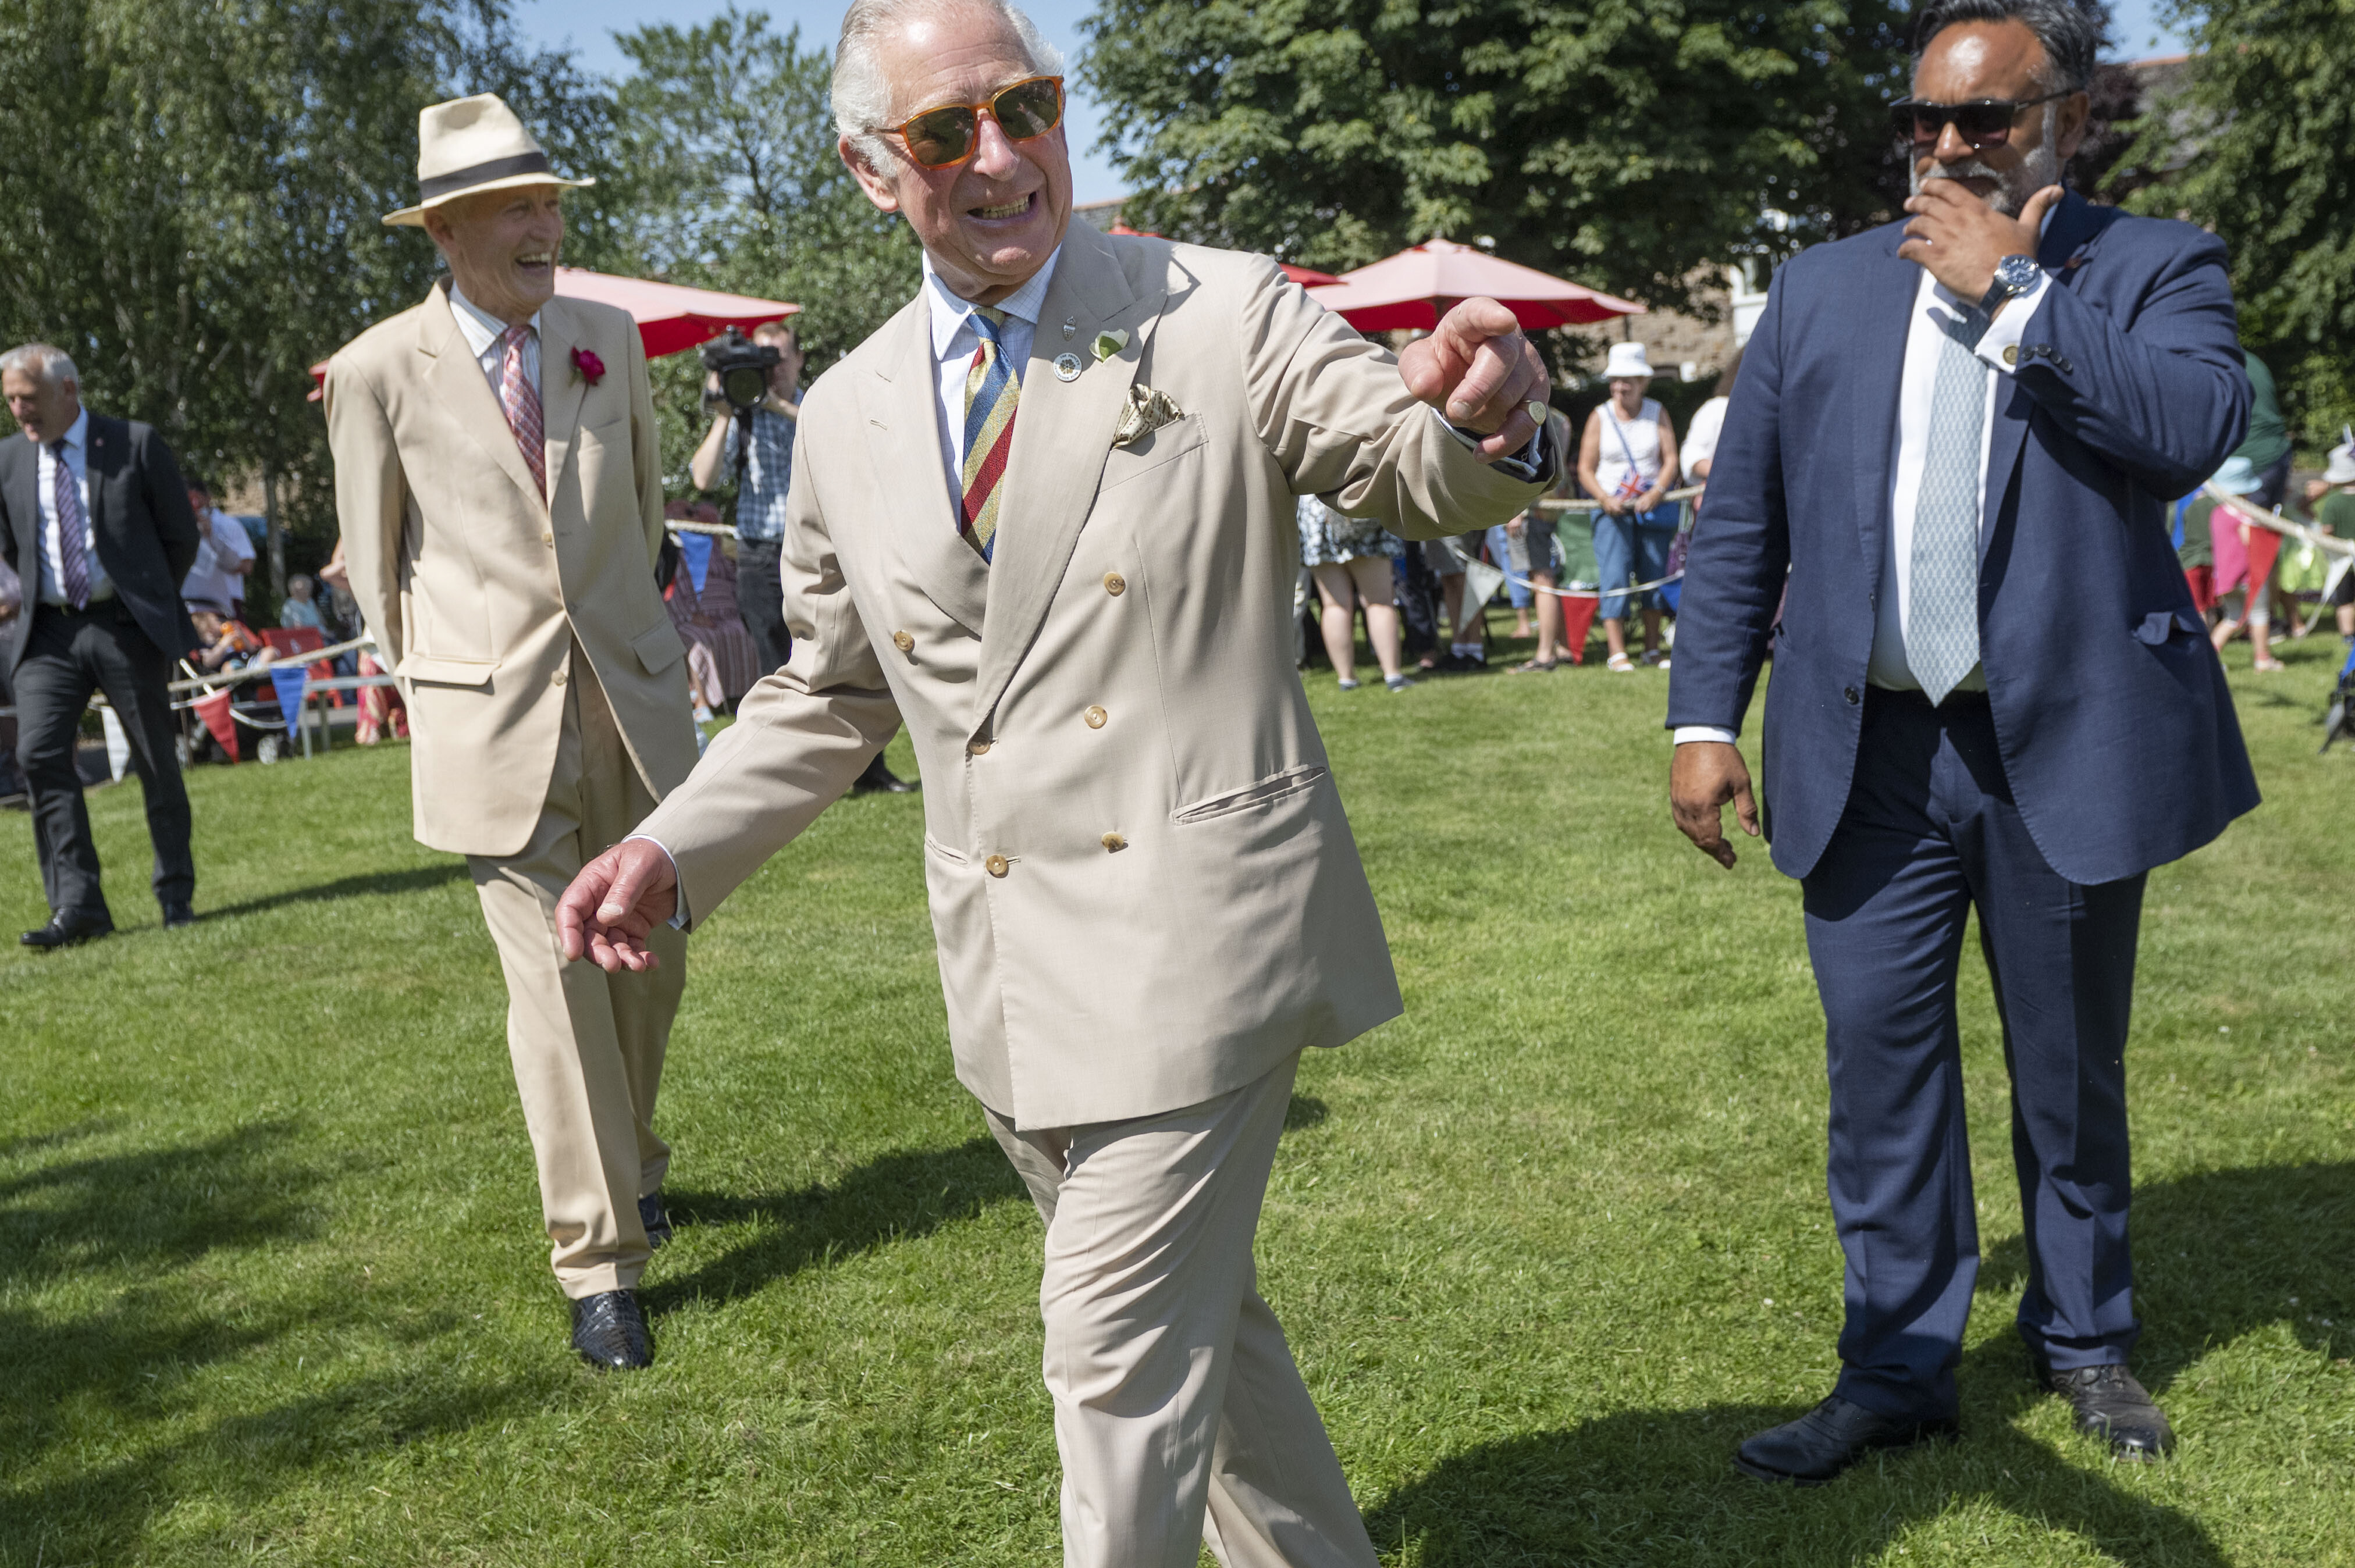 Prince Charles' charity faces fresh investigation after reported donations from Russian banker